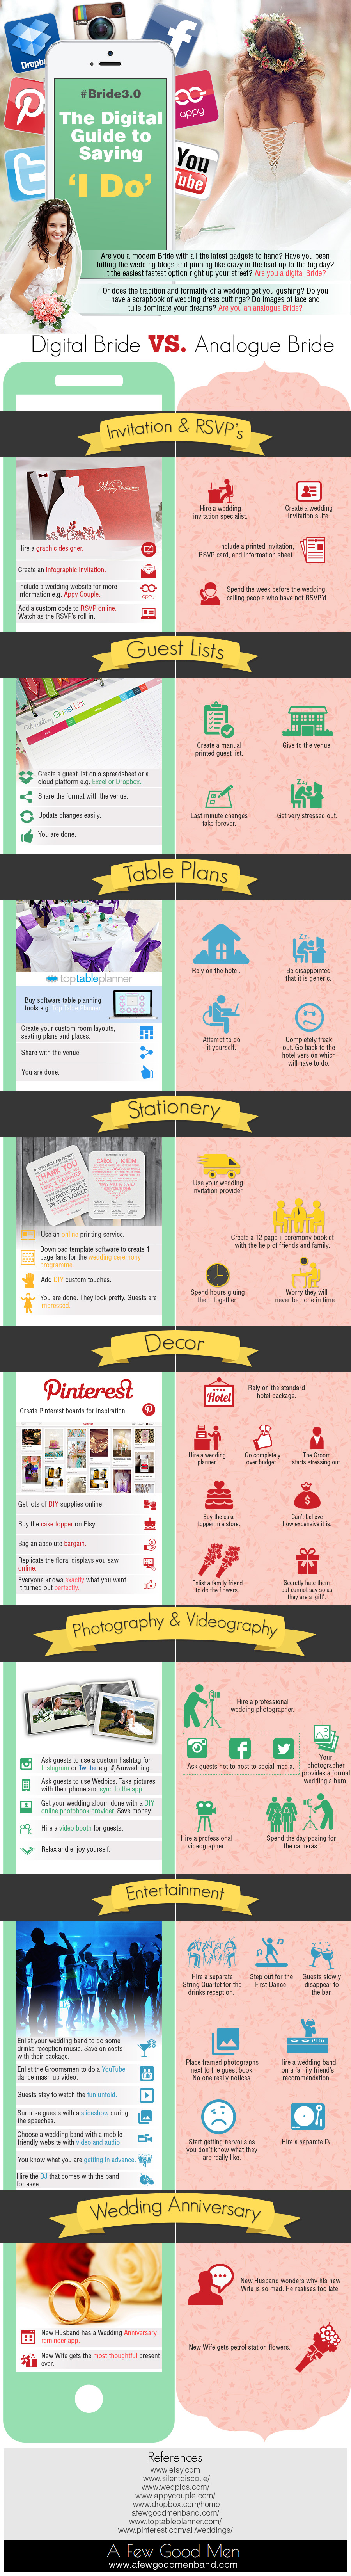 Digital vs Analogue Bride Infographic